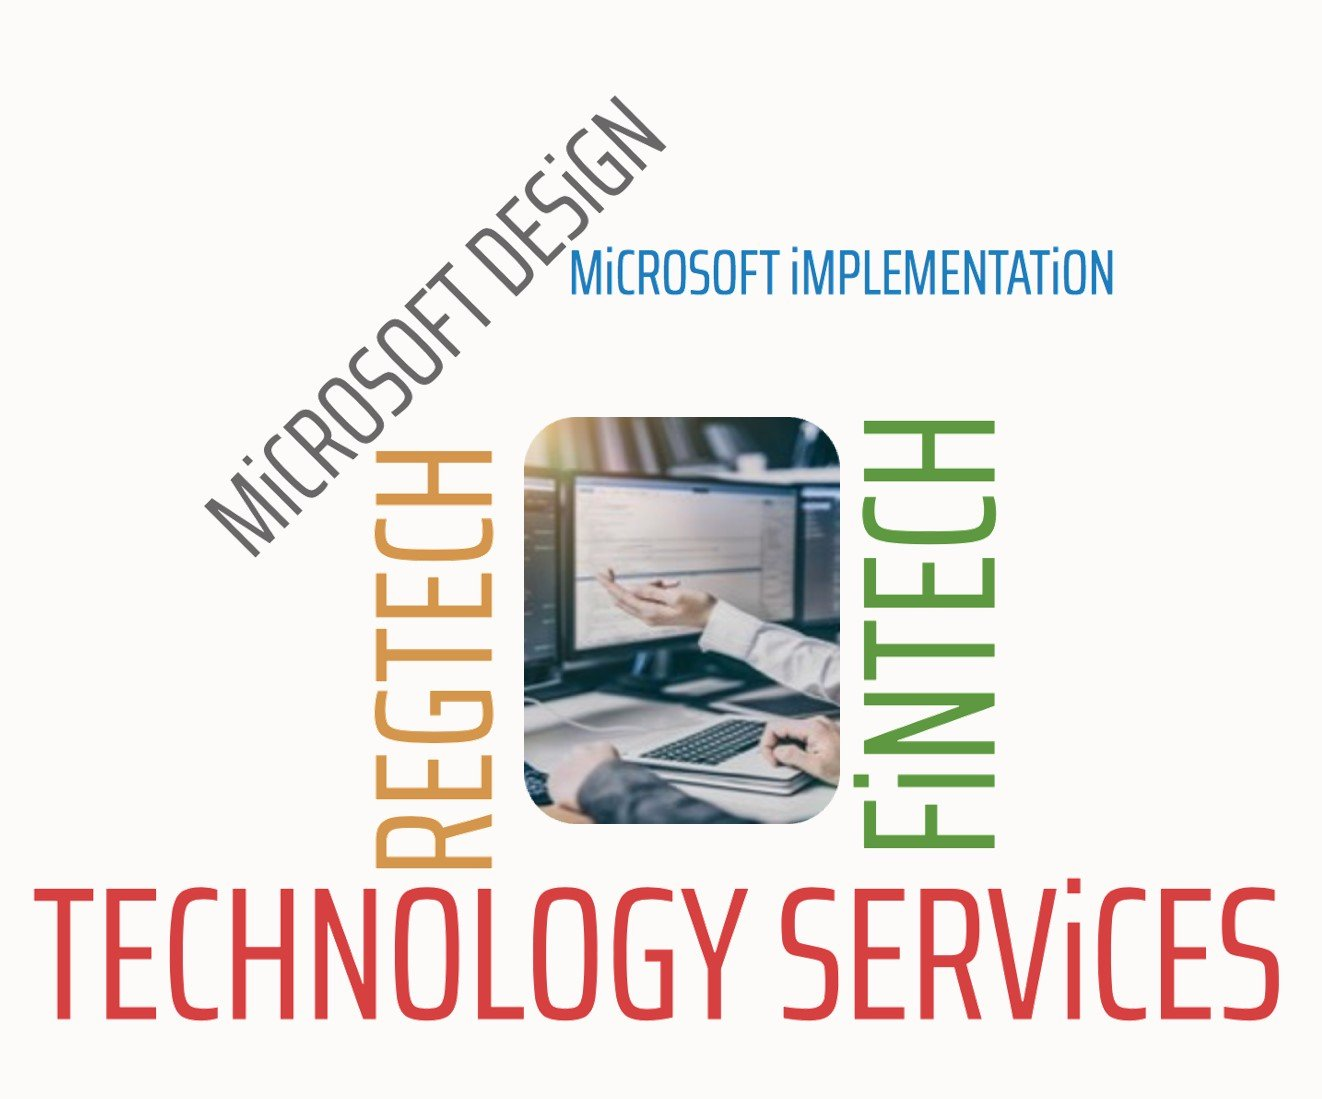 WordCloud_TechnologyServices